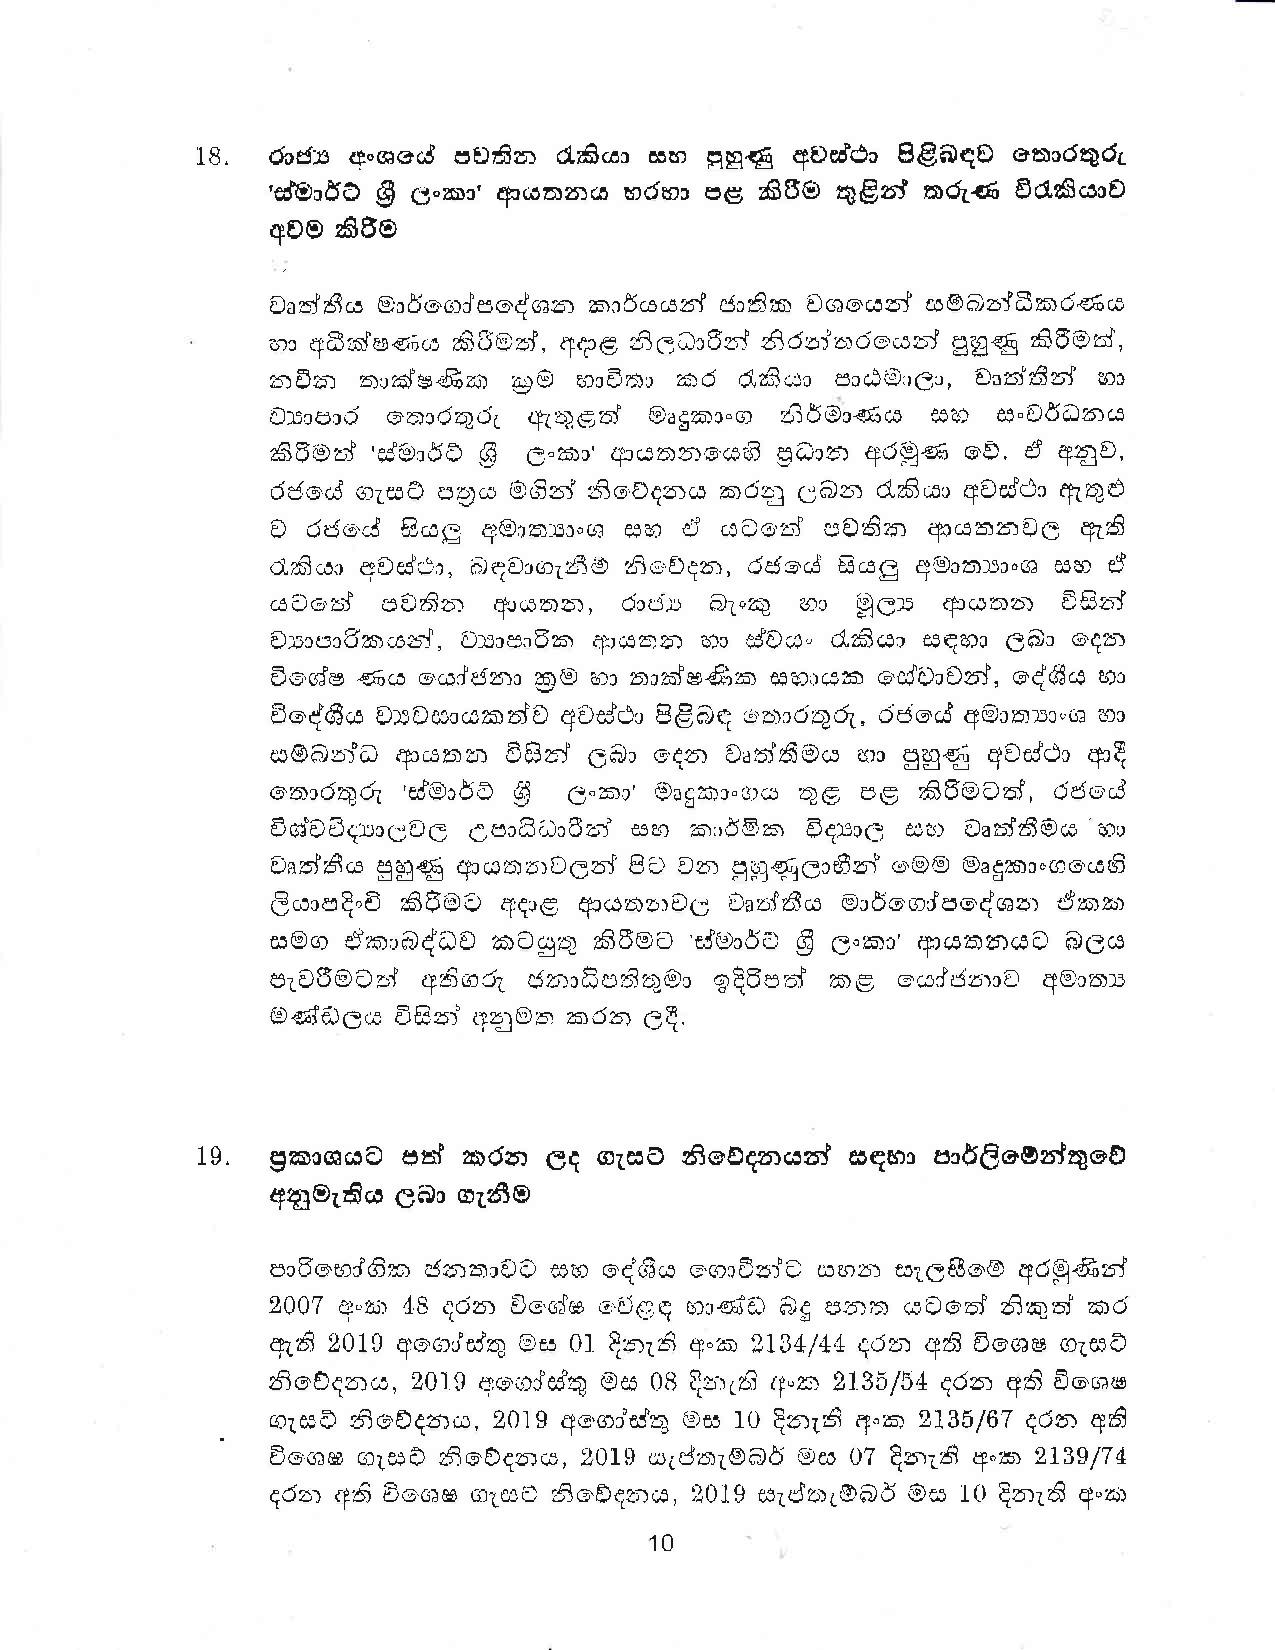 Cabinet Decision on 15.10.2019 page 010